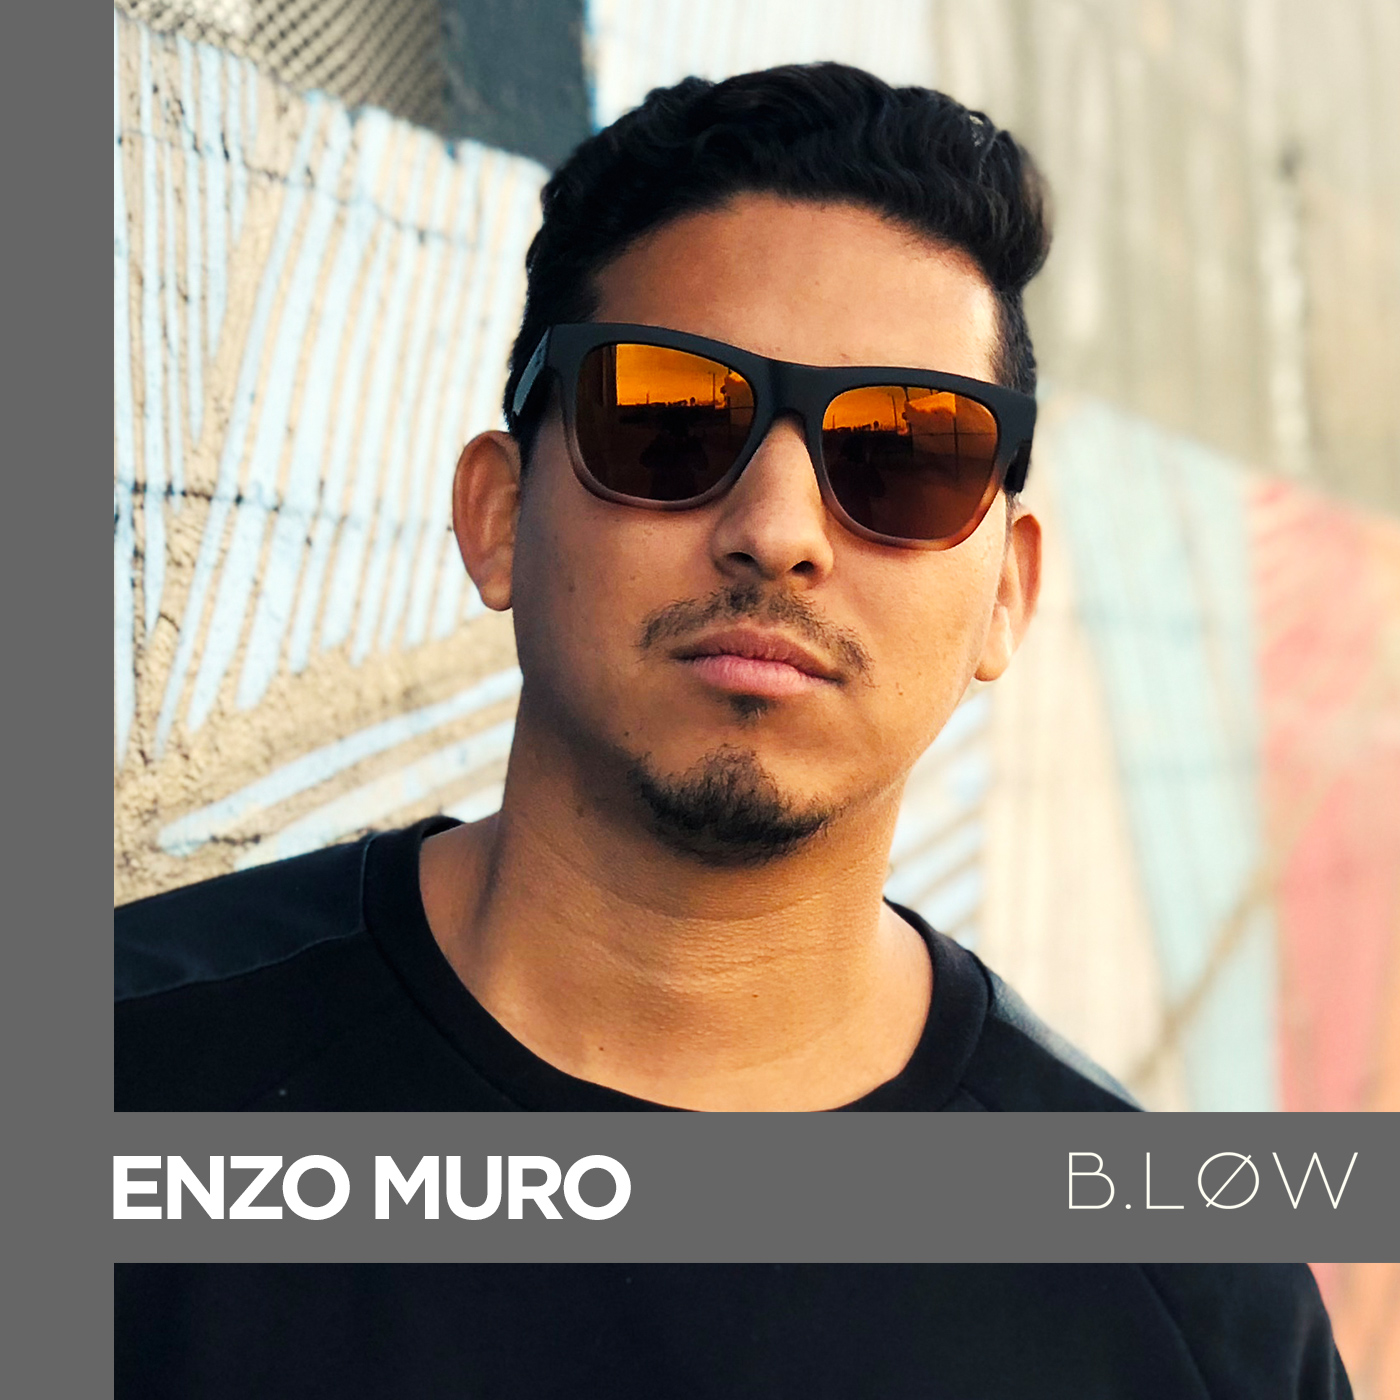 THE COLLECTIVE SERIES: B.LØW – Enzo Muro